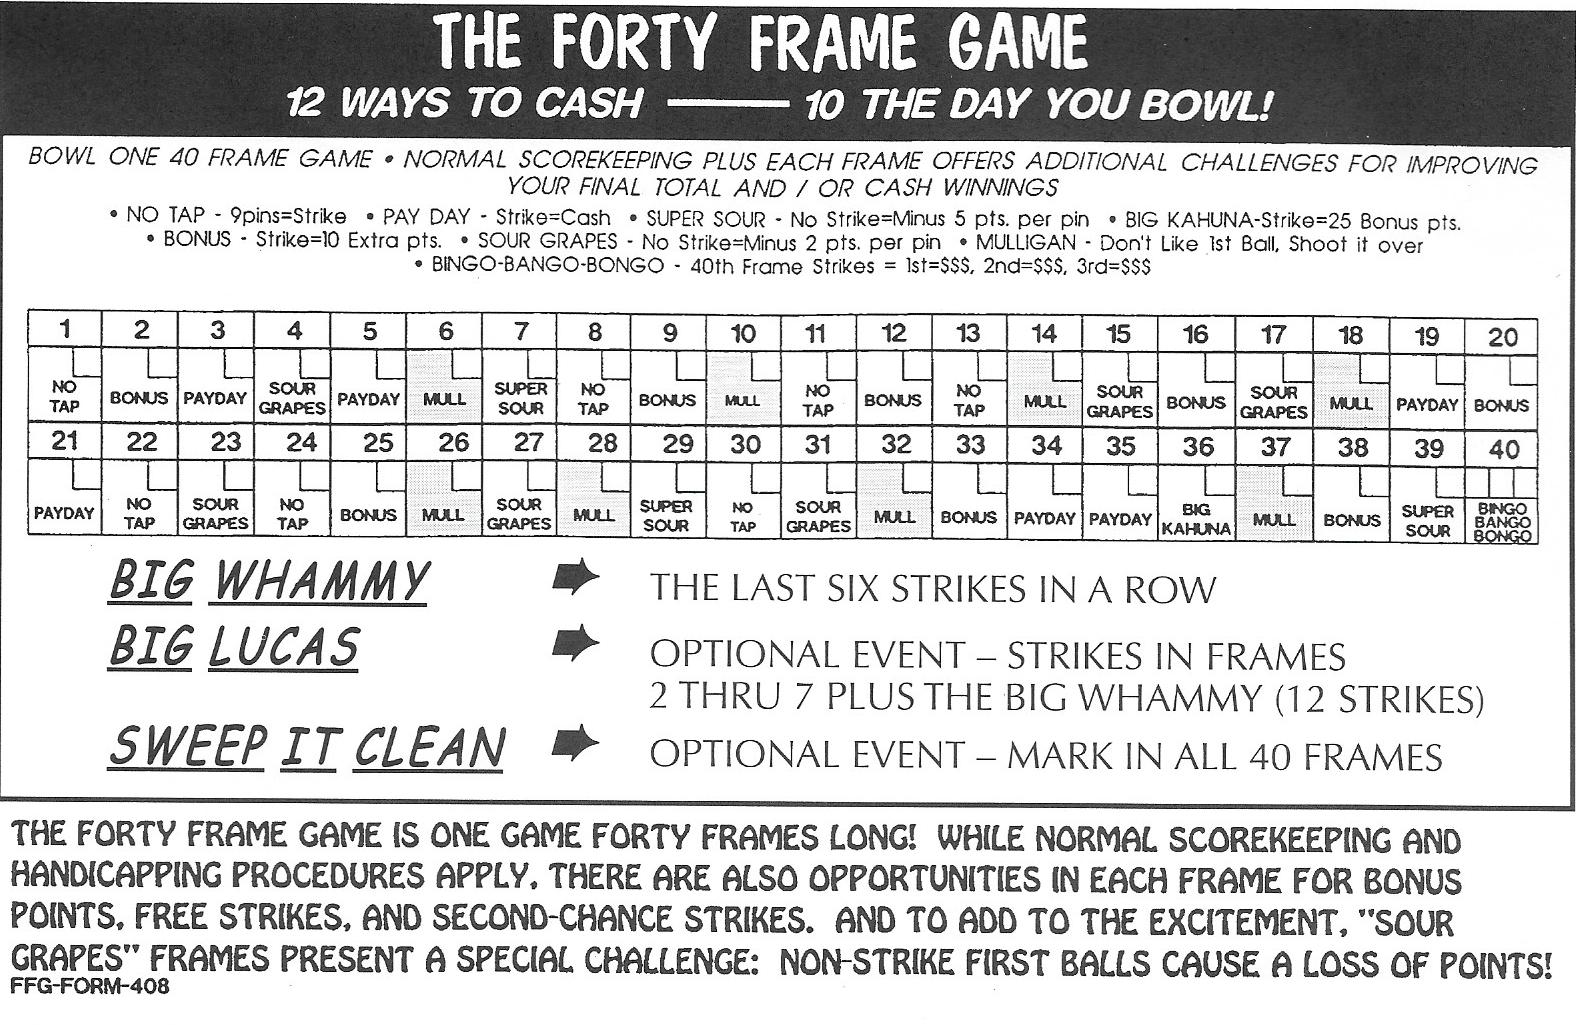 The Forty Frame Game ® is the world\'s most unusual bowling tournament